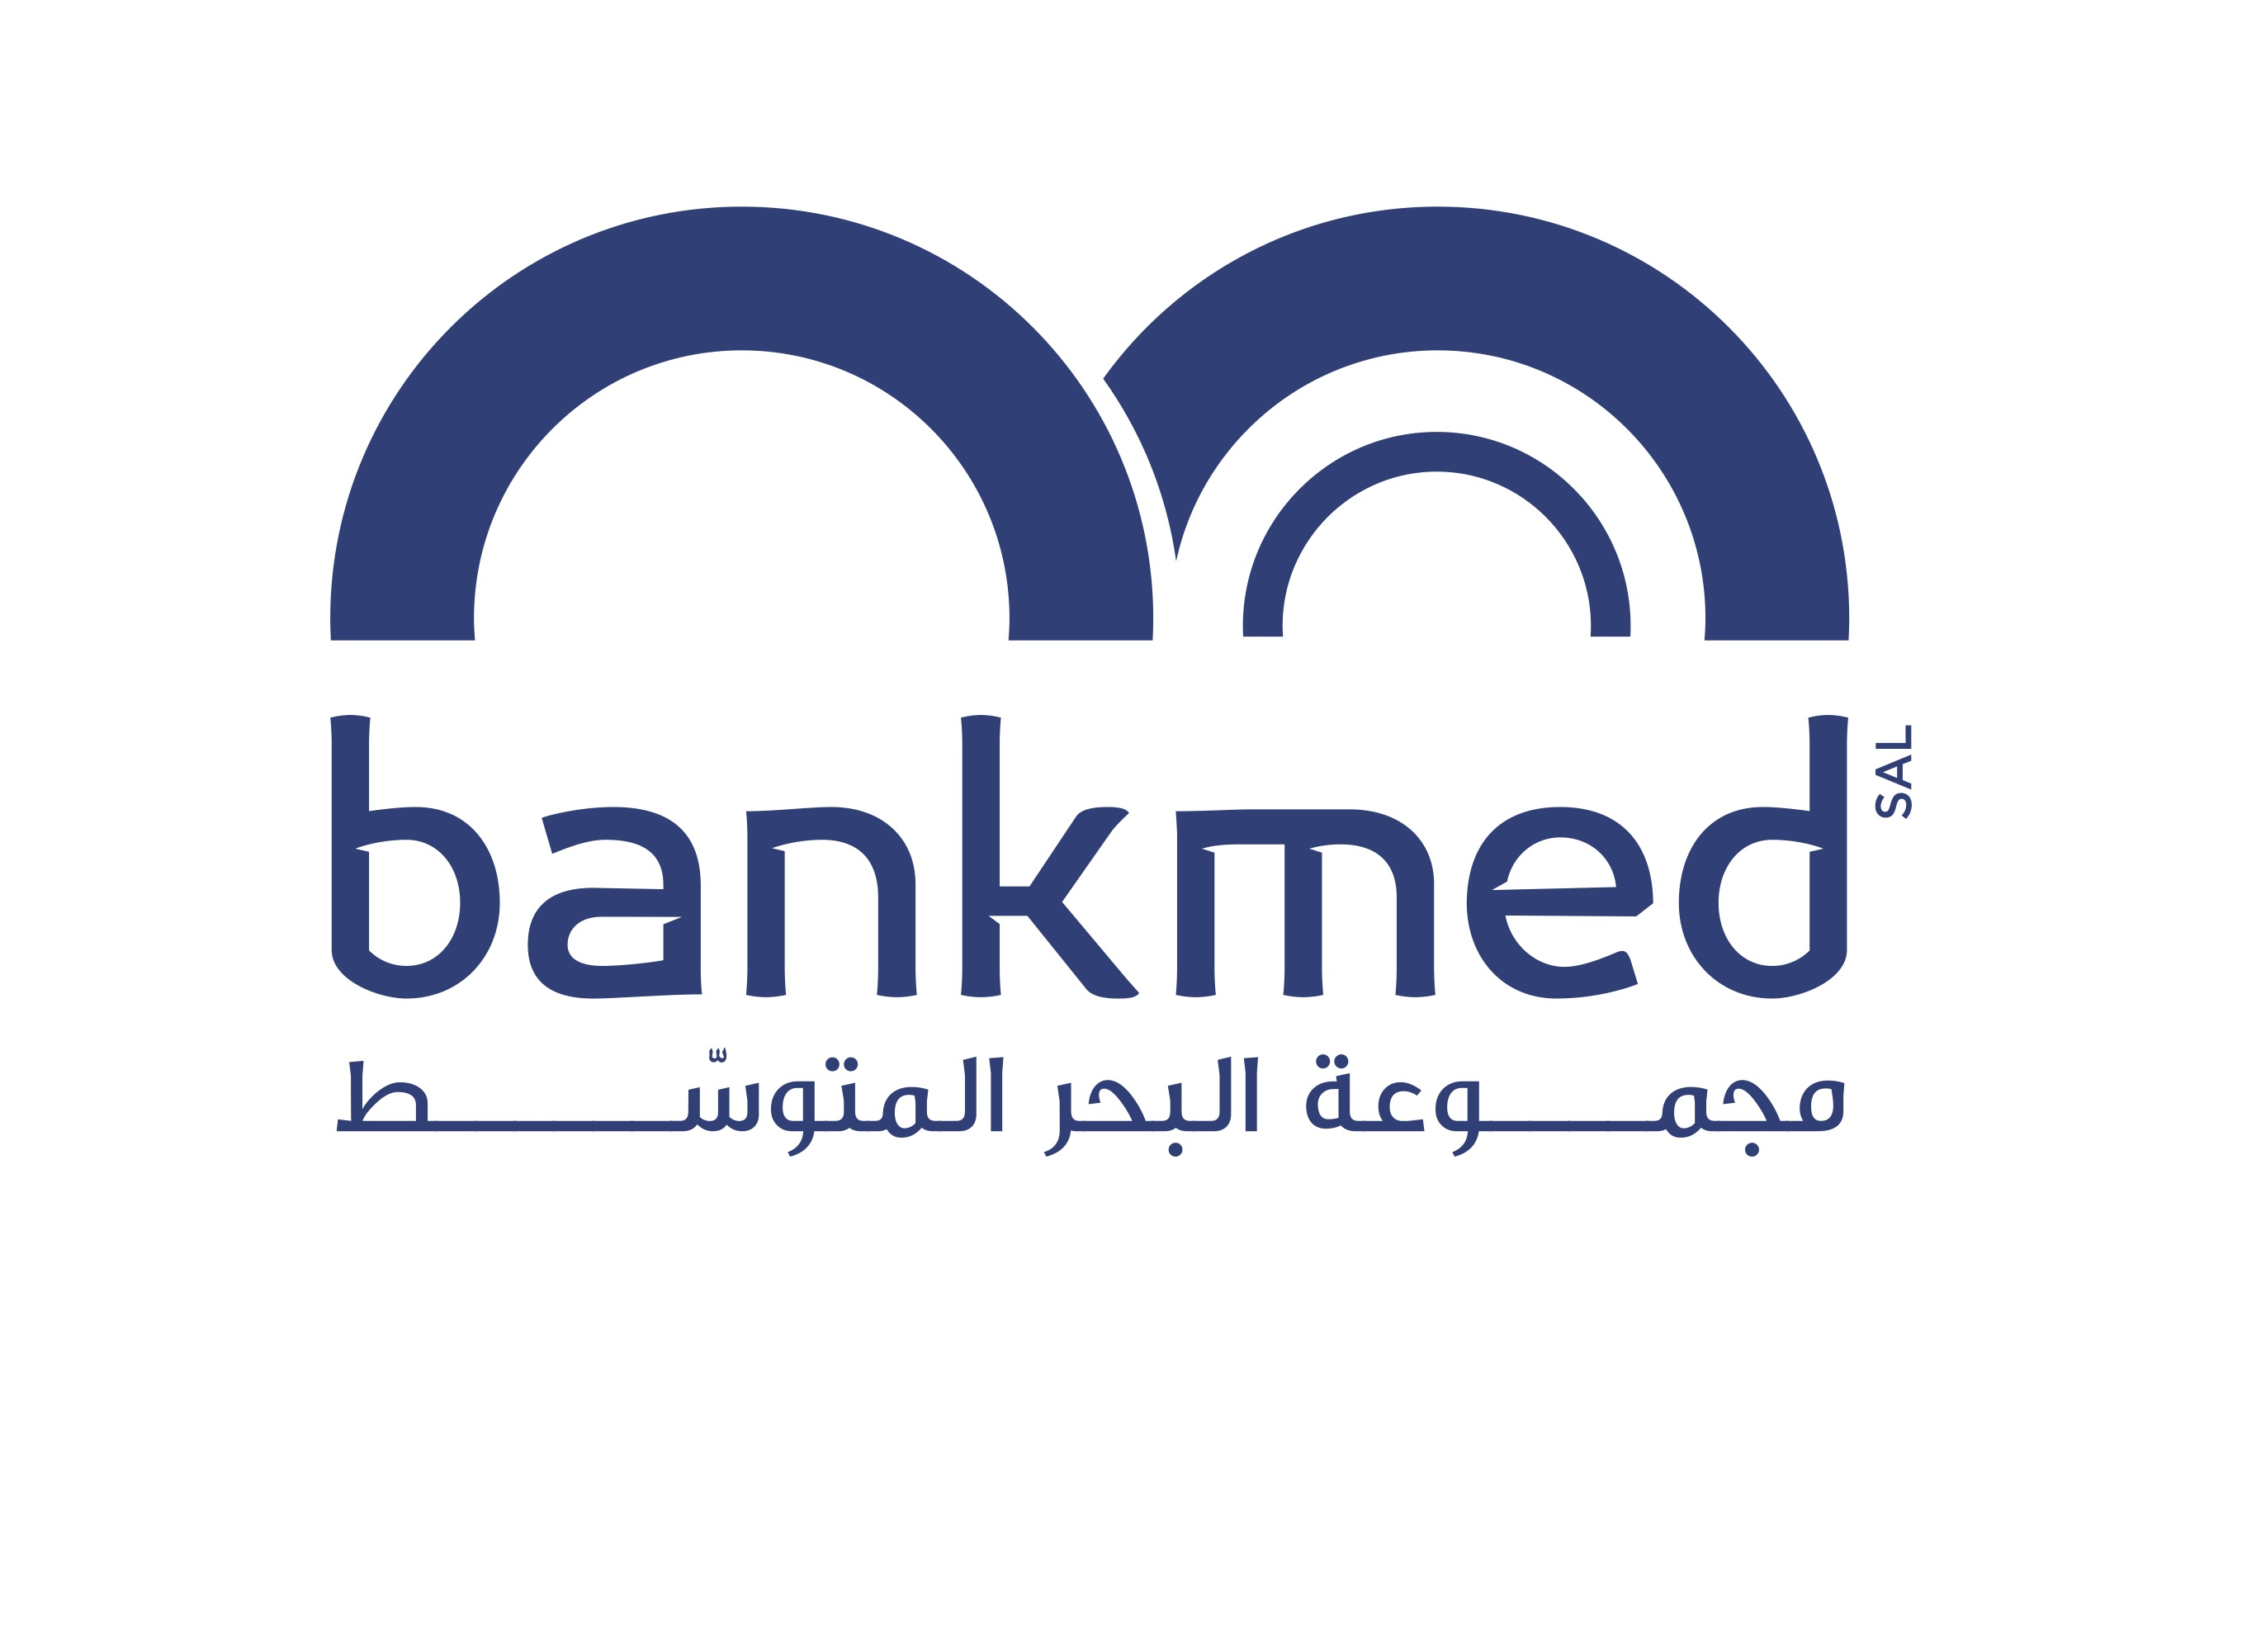 Bankmed - Personal Loan